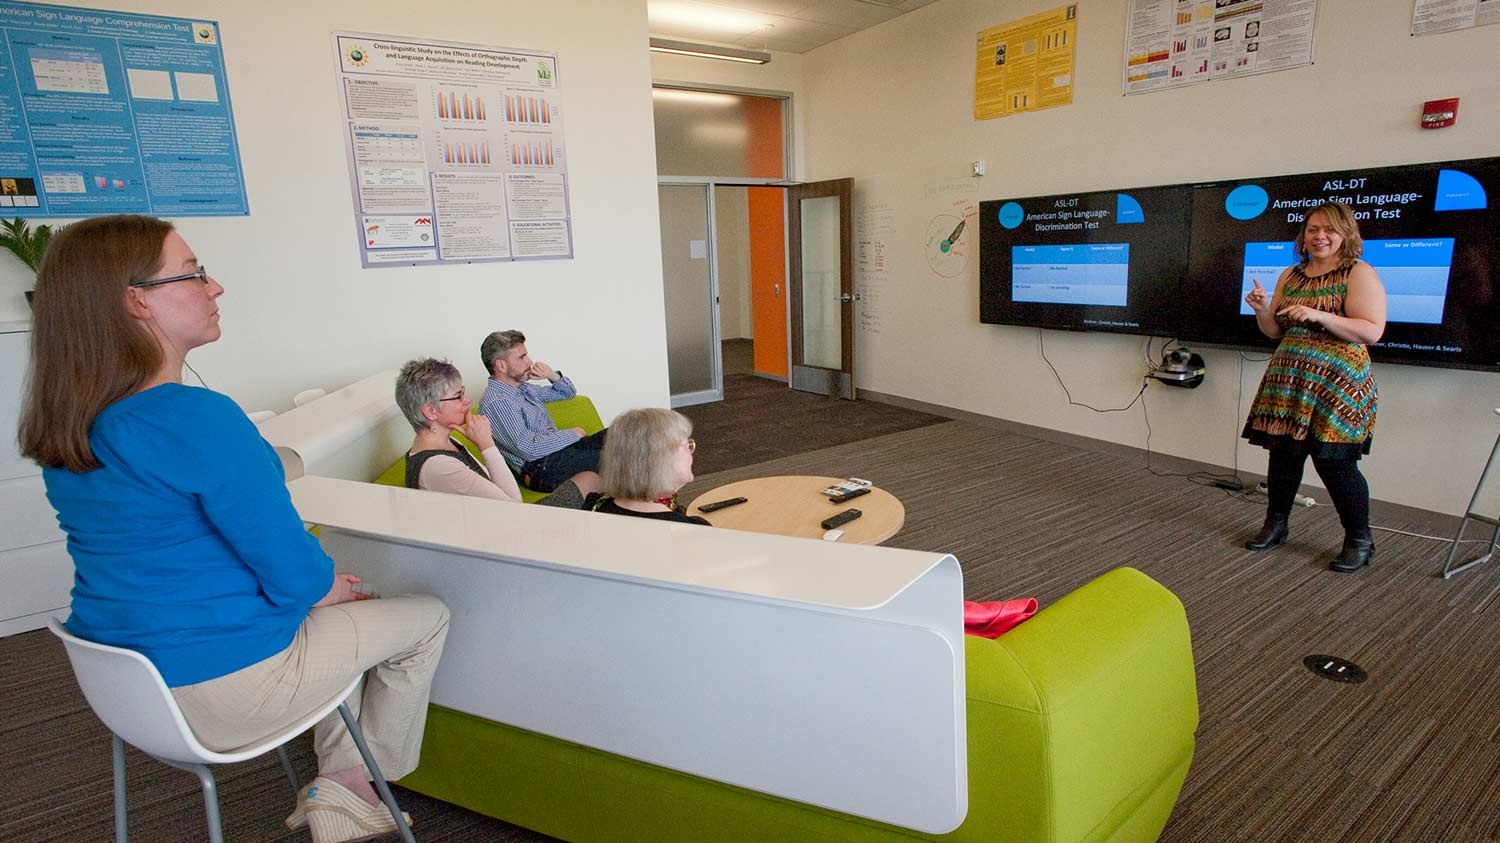 People on a couch watching a presentation on two televisions